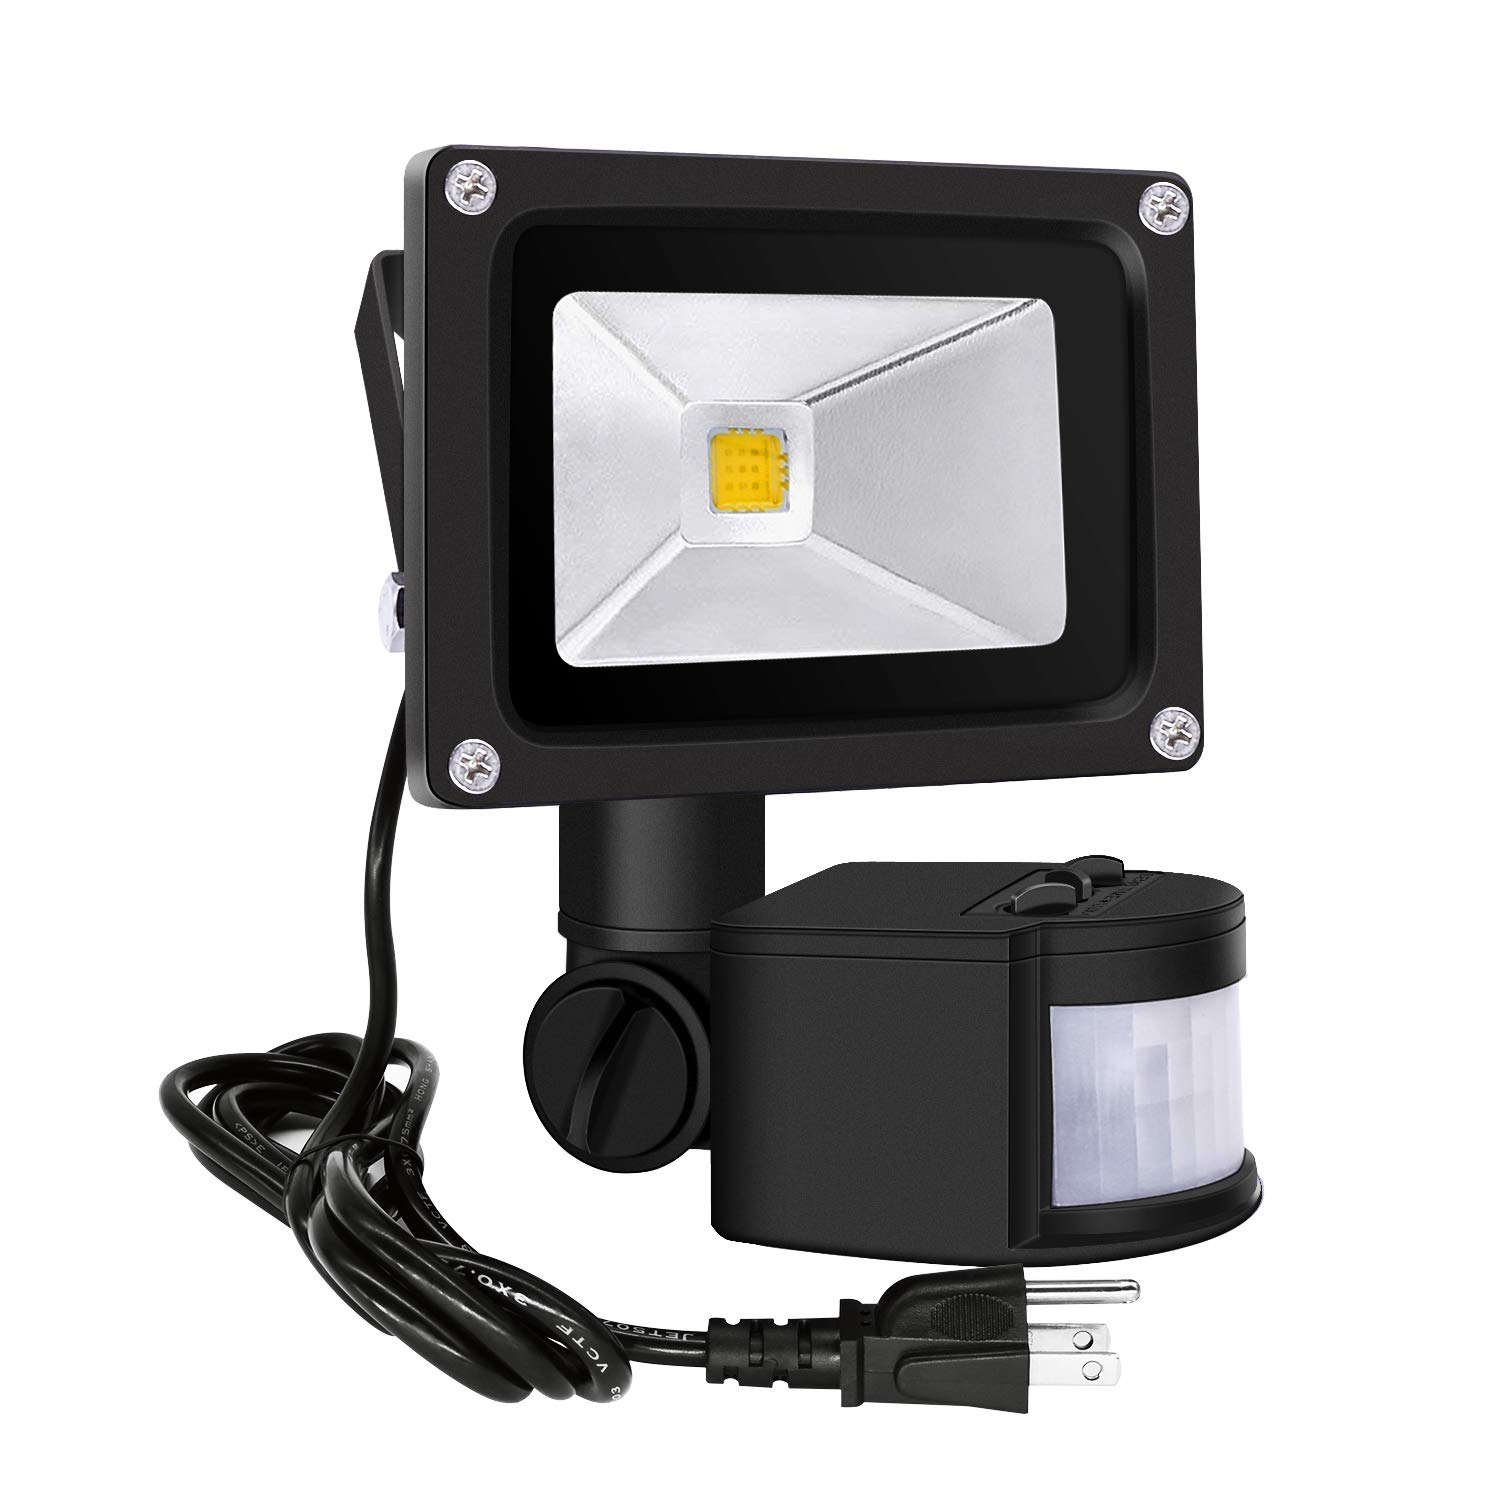 Motion Sensor Led Flood Lights 10W Outdoor Security Floodlights IP65 Waterproof Spotlight Auto ON/Off Induction LED Lamp with US 3-Plug 1000LM,3200K,AC86-265V (Warm White-B)